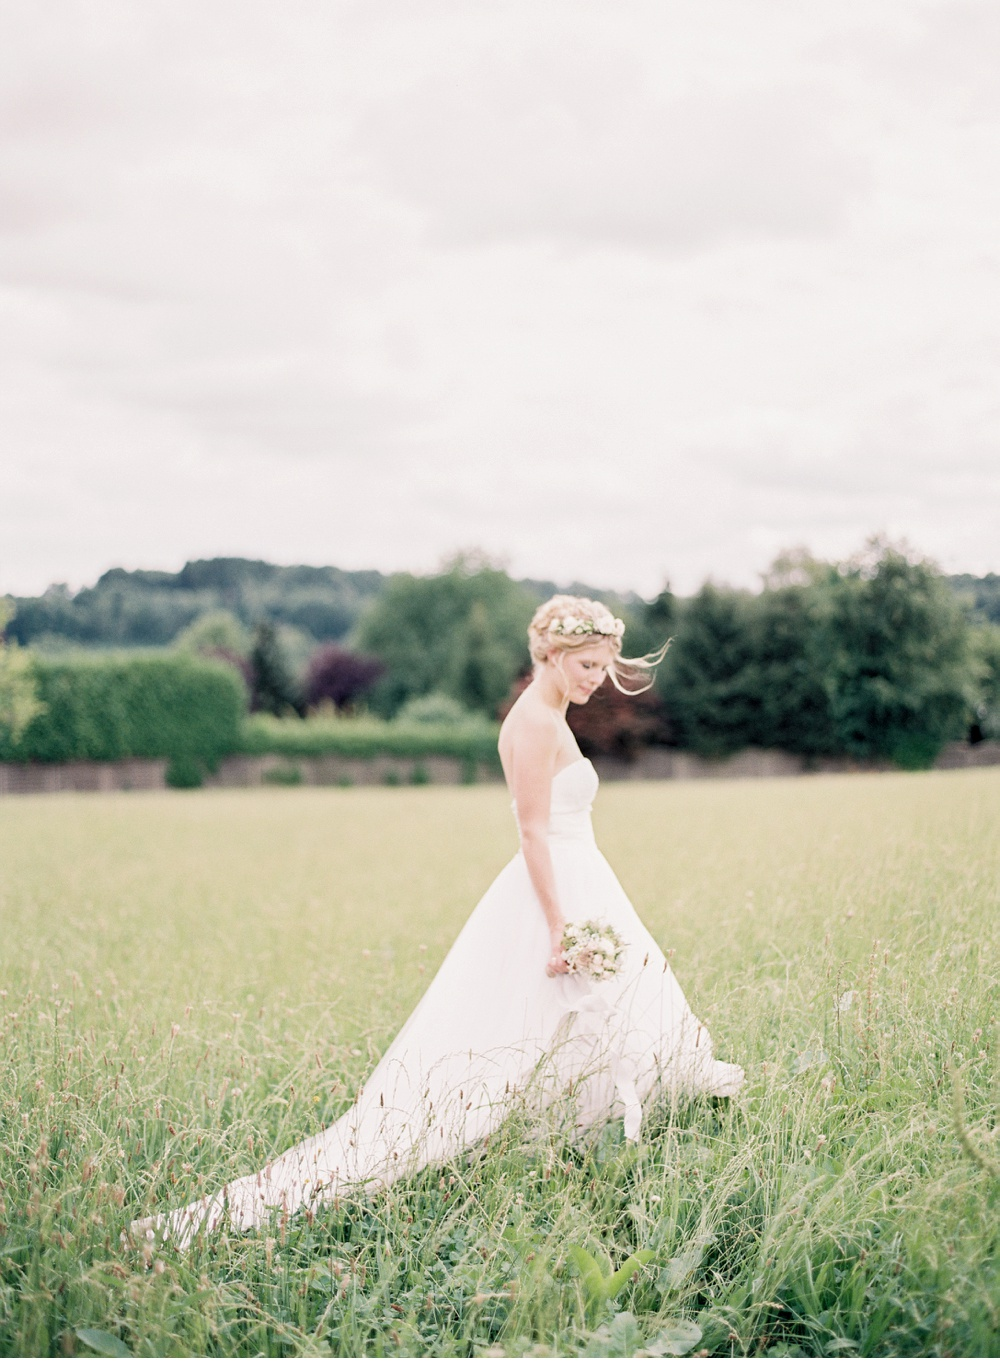 Europe_FineArtWedding_Photographer©MadalinaSheldon_0039.jpg